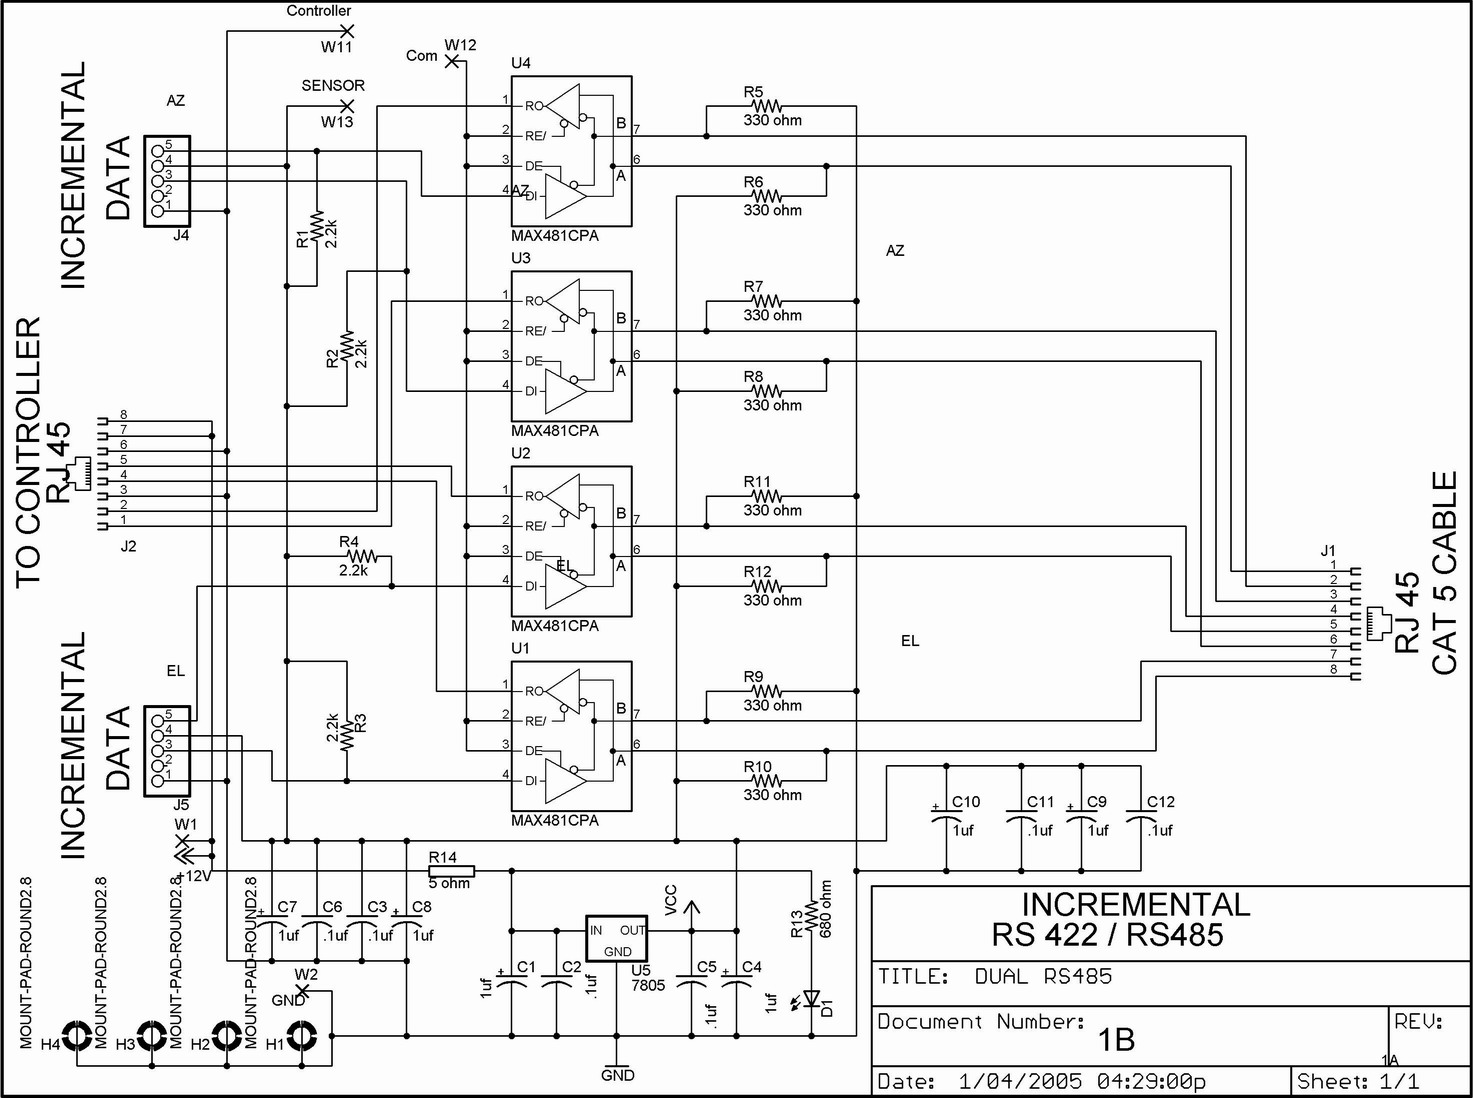 Rs 485 Wire Diagram Auto Electrical Wiring 1994 Ford E150 Fuse Panel Related With 1986 Chevrolet Ignition